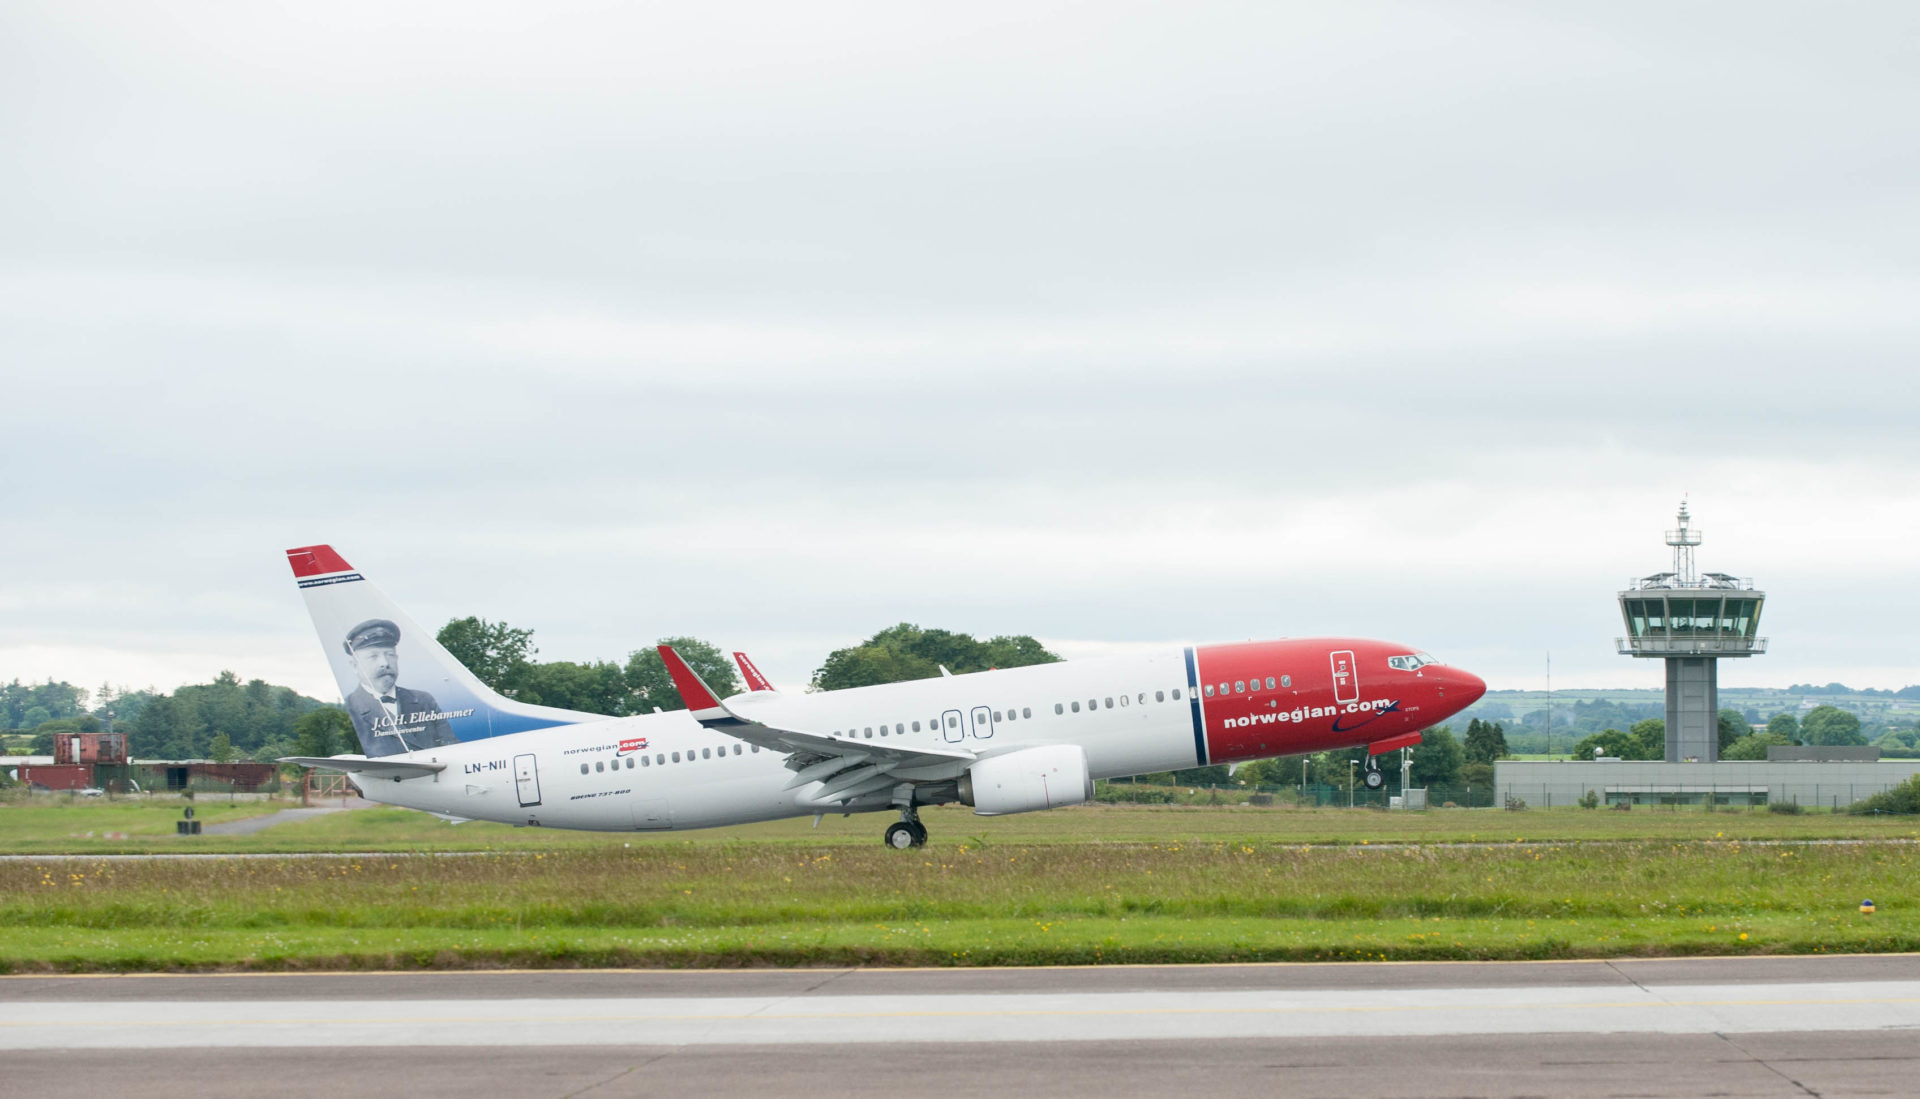 IAG to sell its shares in Norwegian